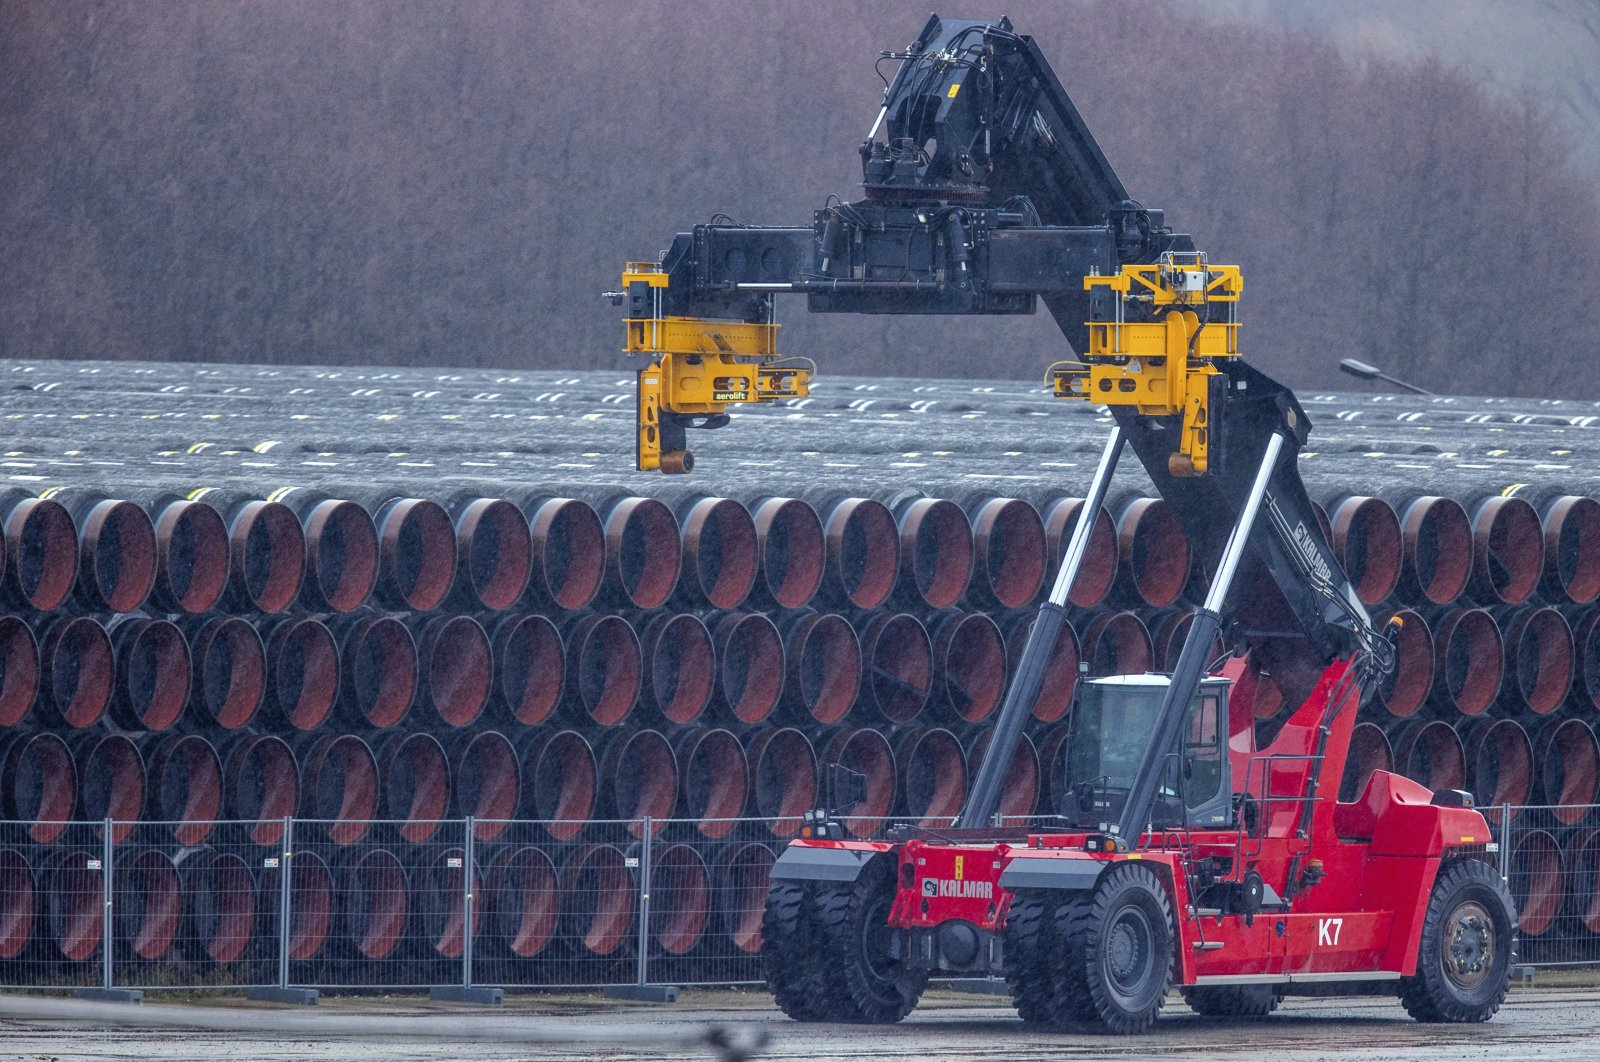 A special vehicle used to transport pipes for the Nord Stream 2 natural gas pipeline stands next to pipes at a storage yard in the port of Mukran in Sassnitz on the island of Ruegen, Germany on Jan. 6, 2021. (AP Photo)